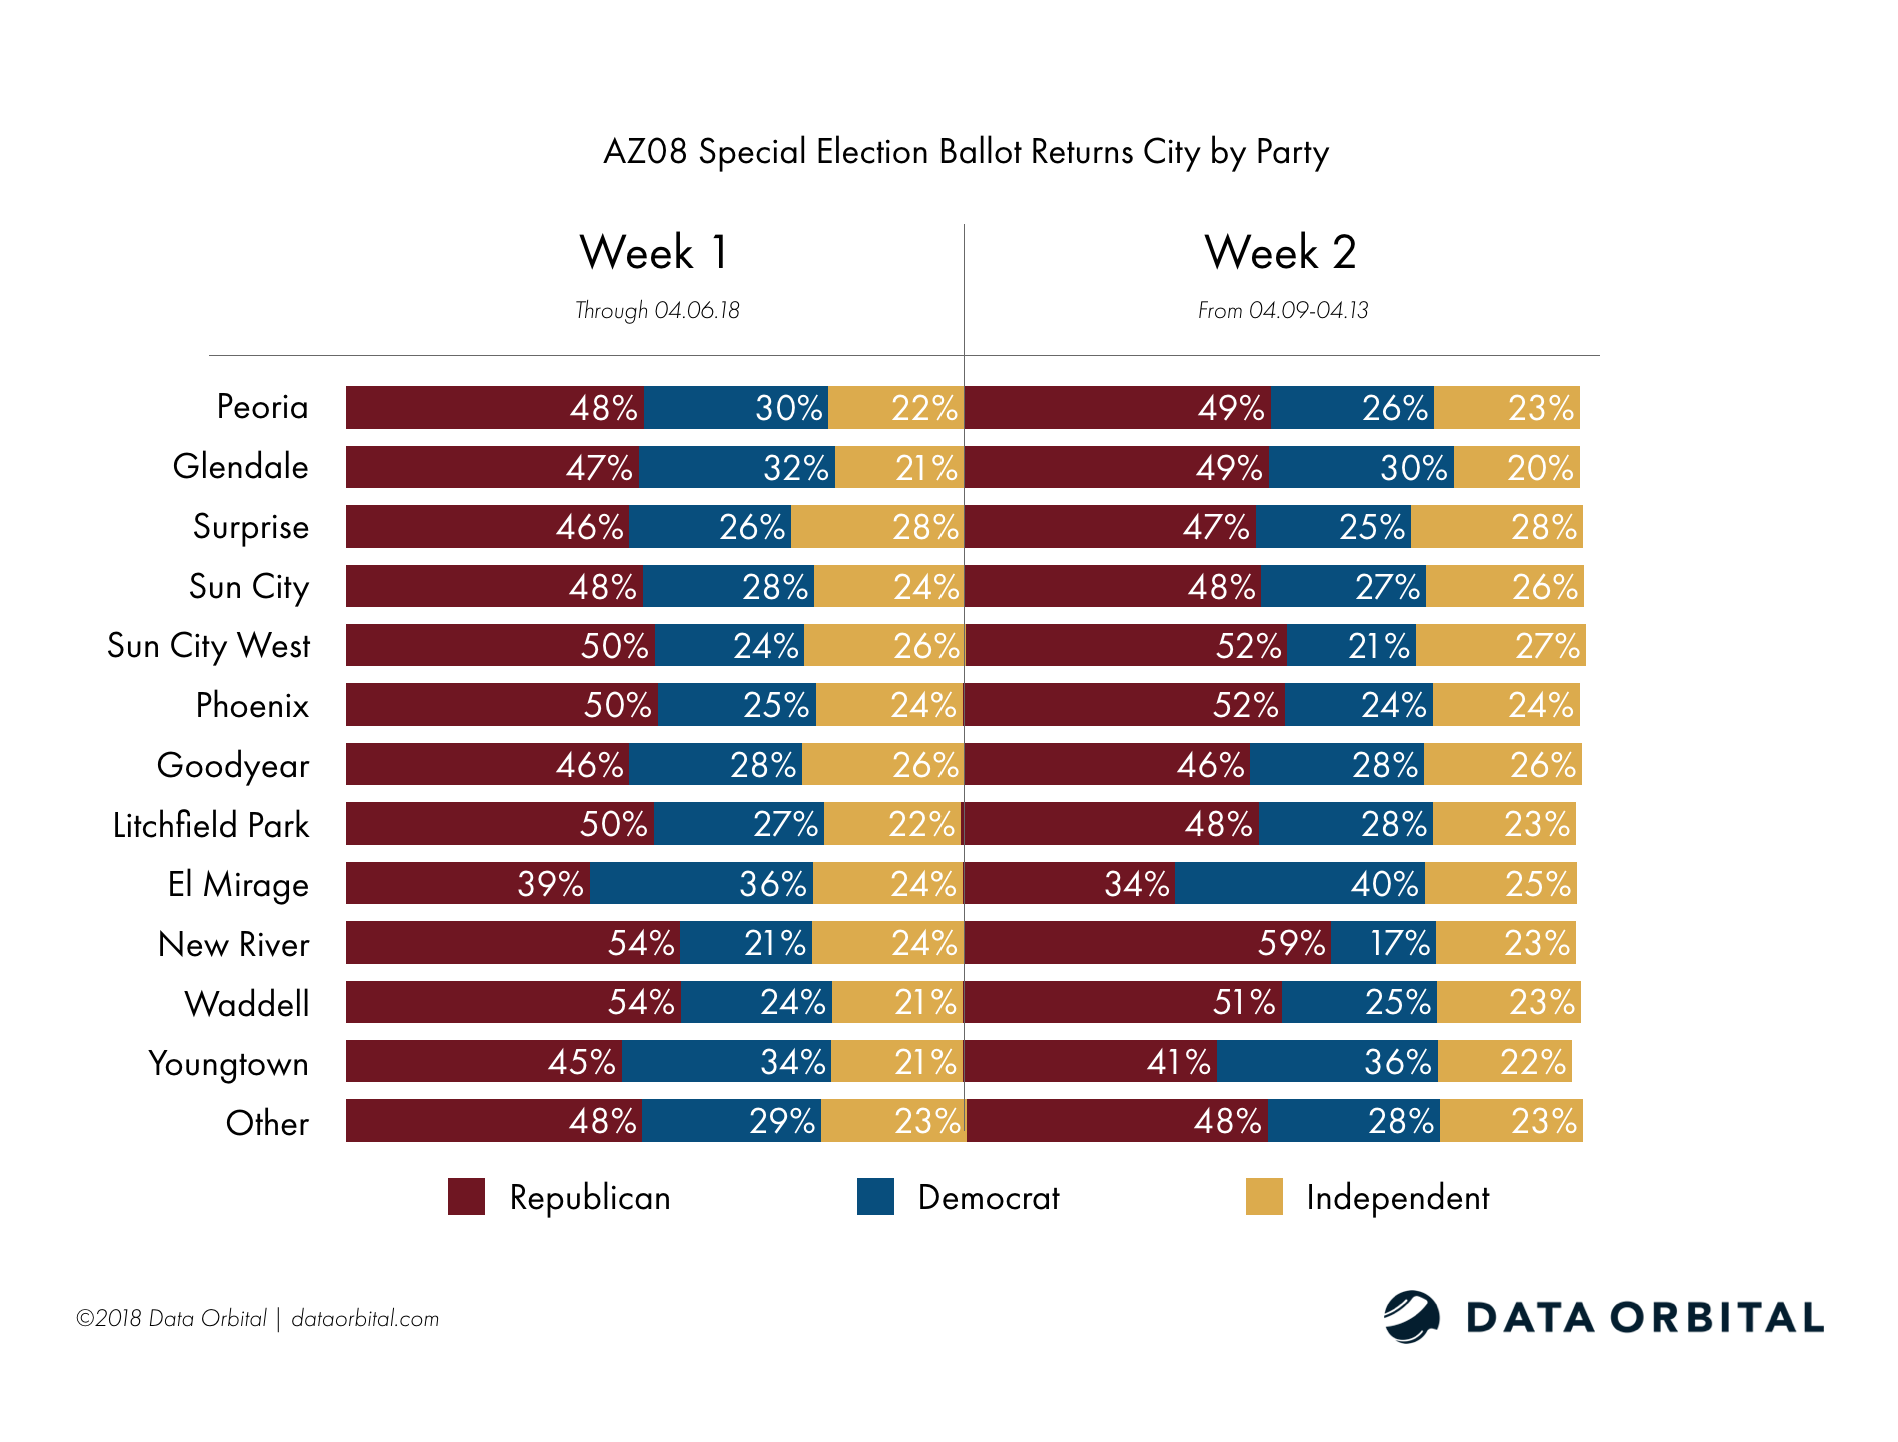 AZ08 Special Election Week 2 Wrap Up and Analysis City by Party Week 1-2 Comparison